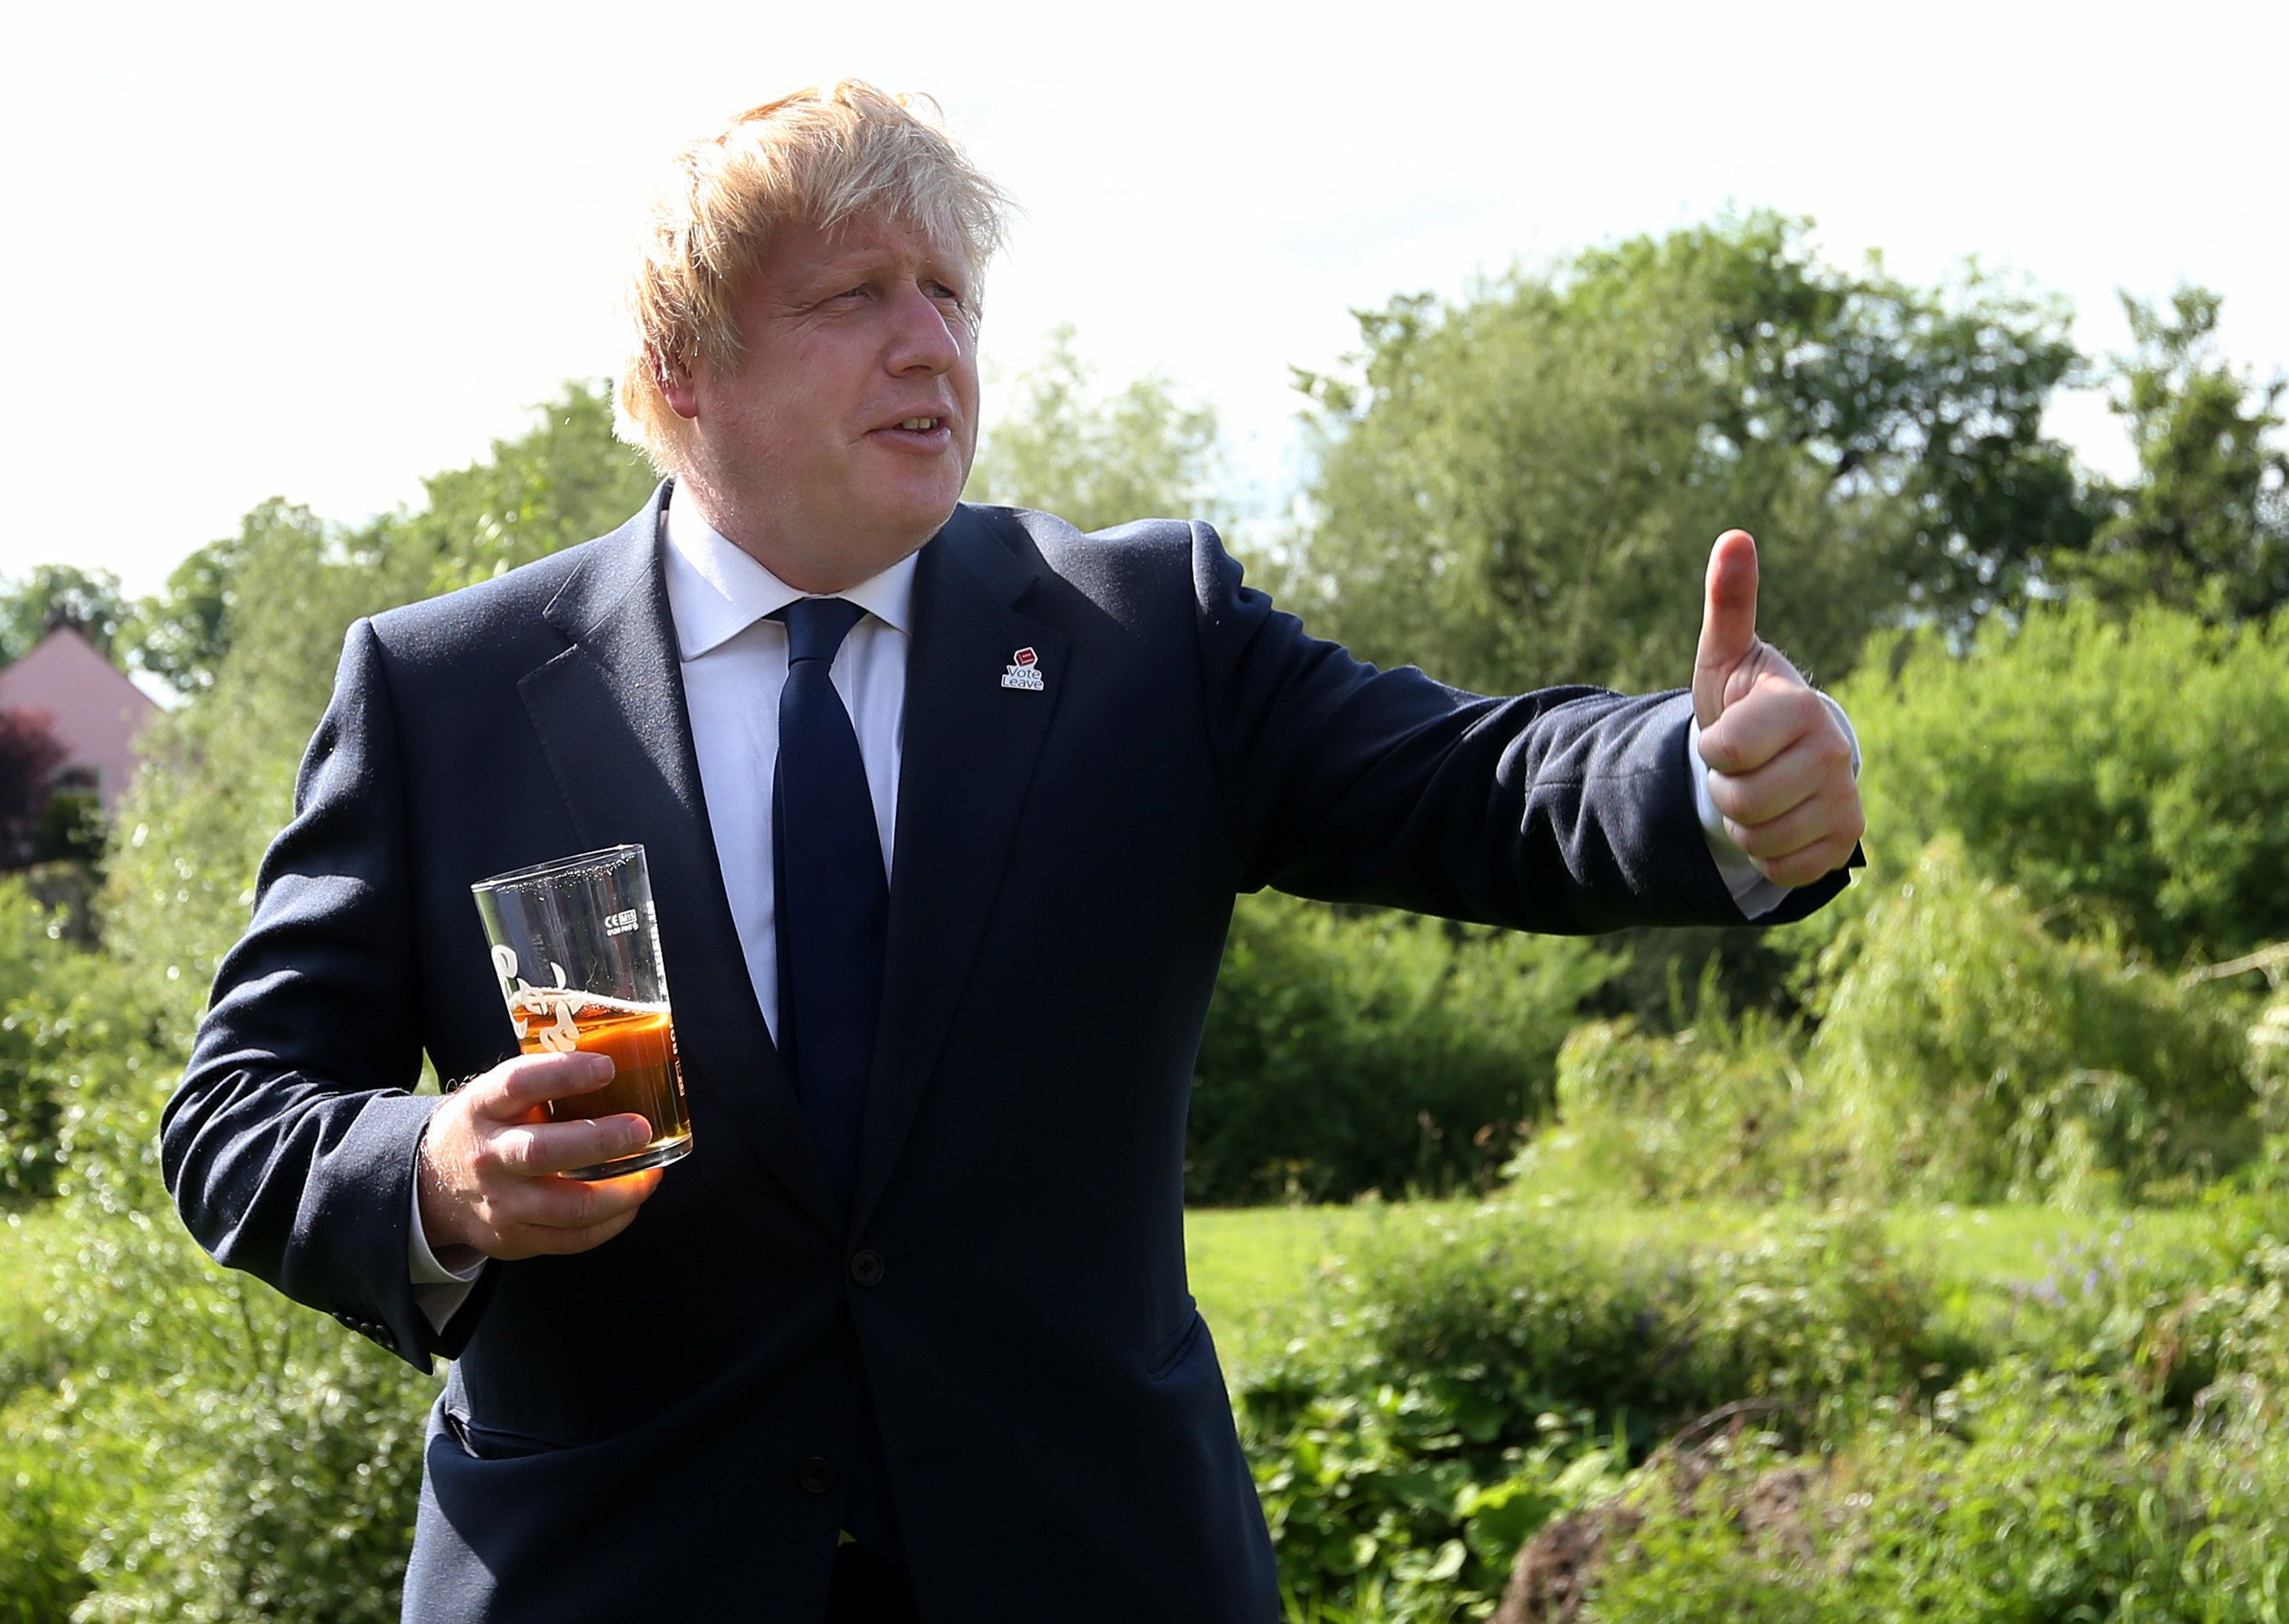 How This Summer's Tory Drinks Parties Will Fuel Leadership